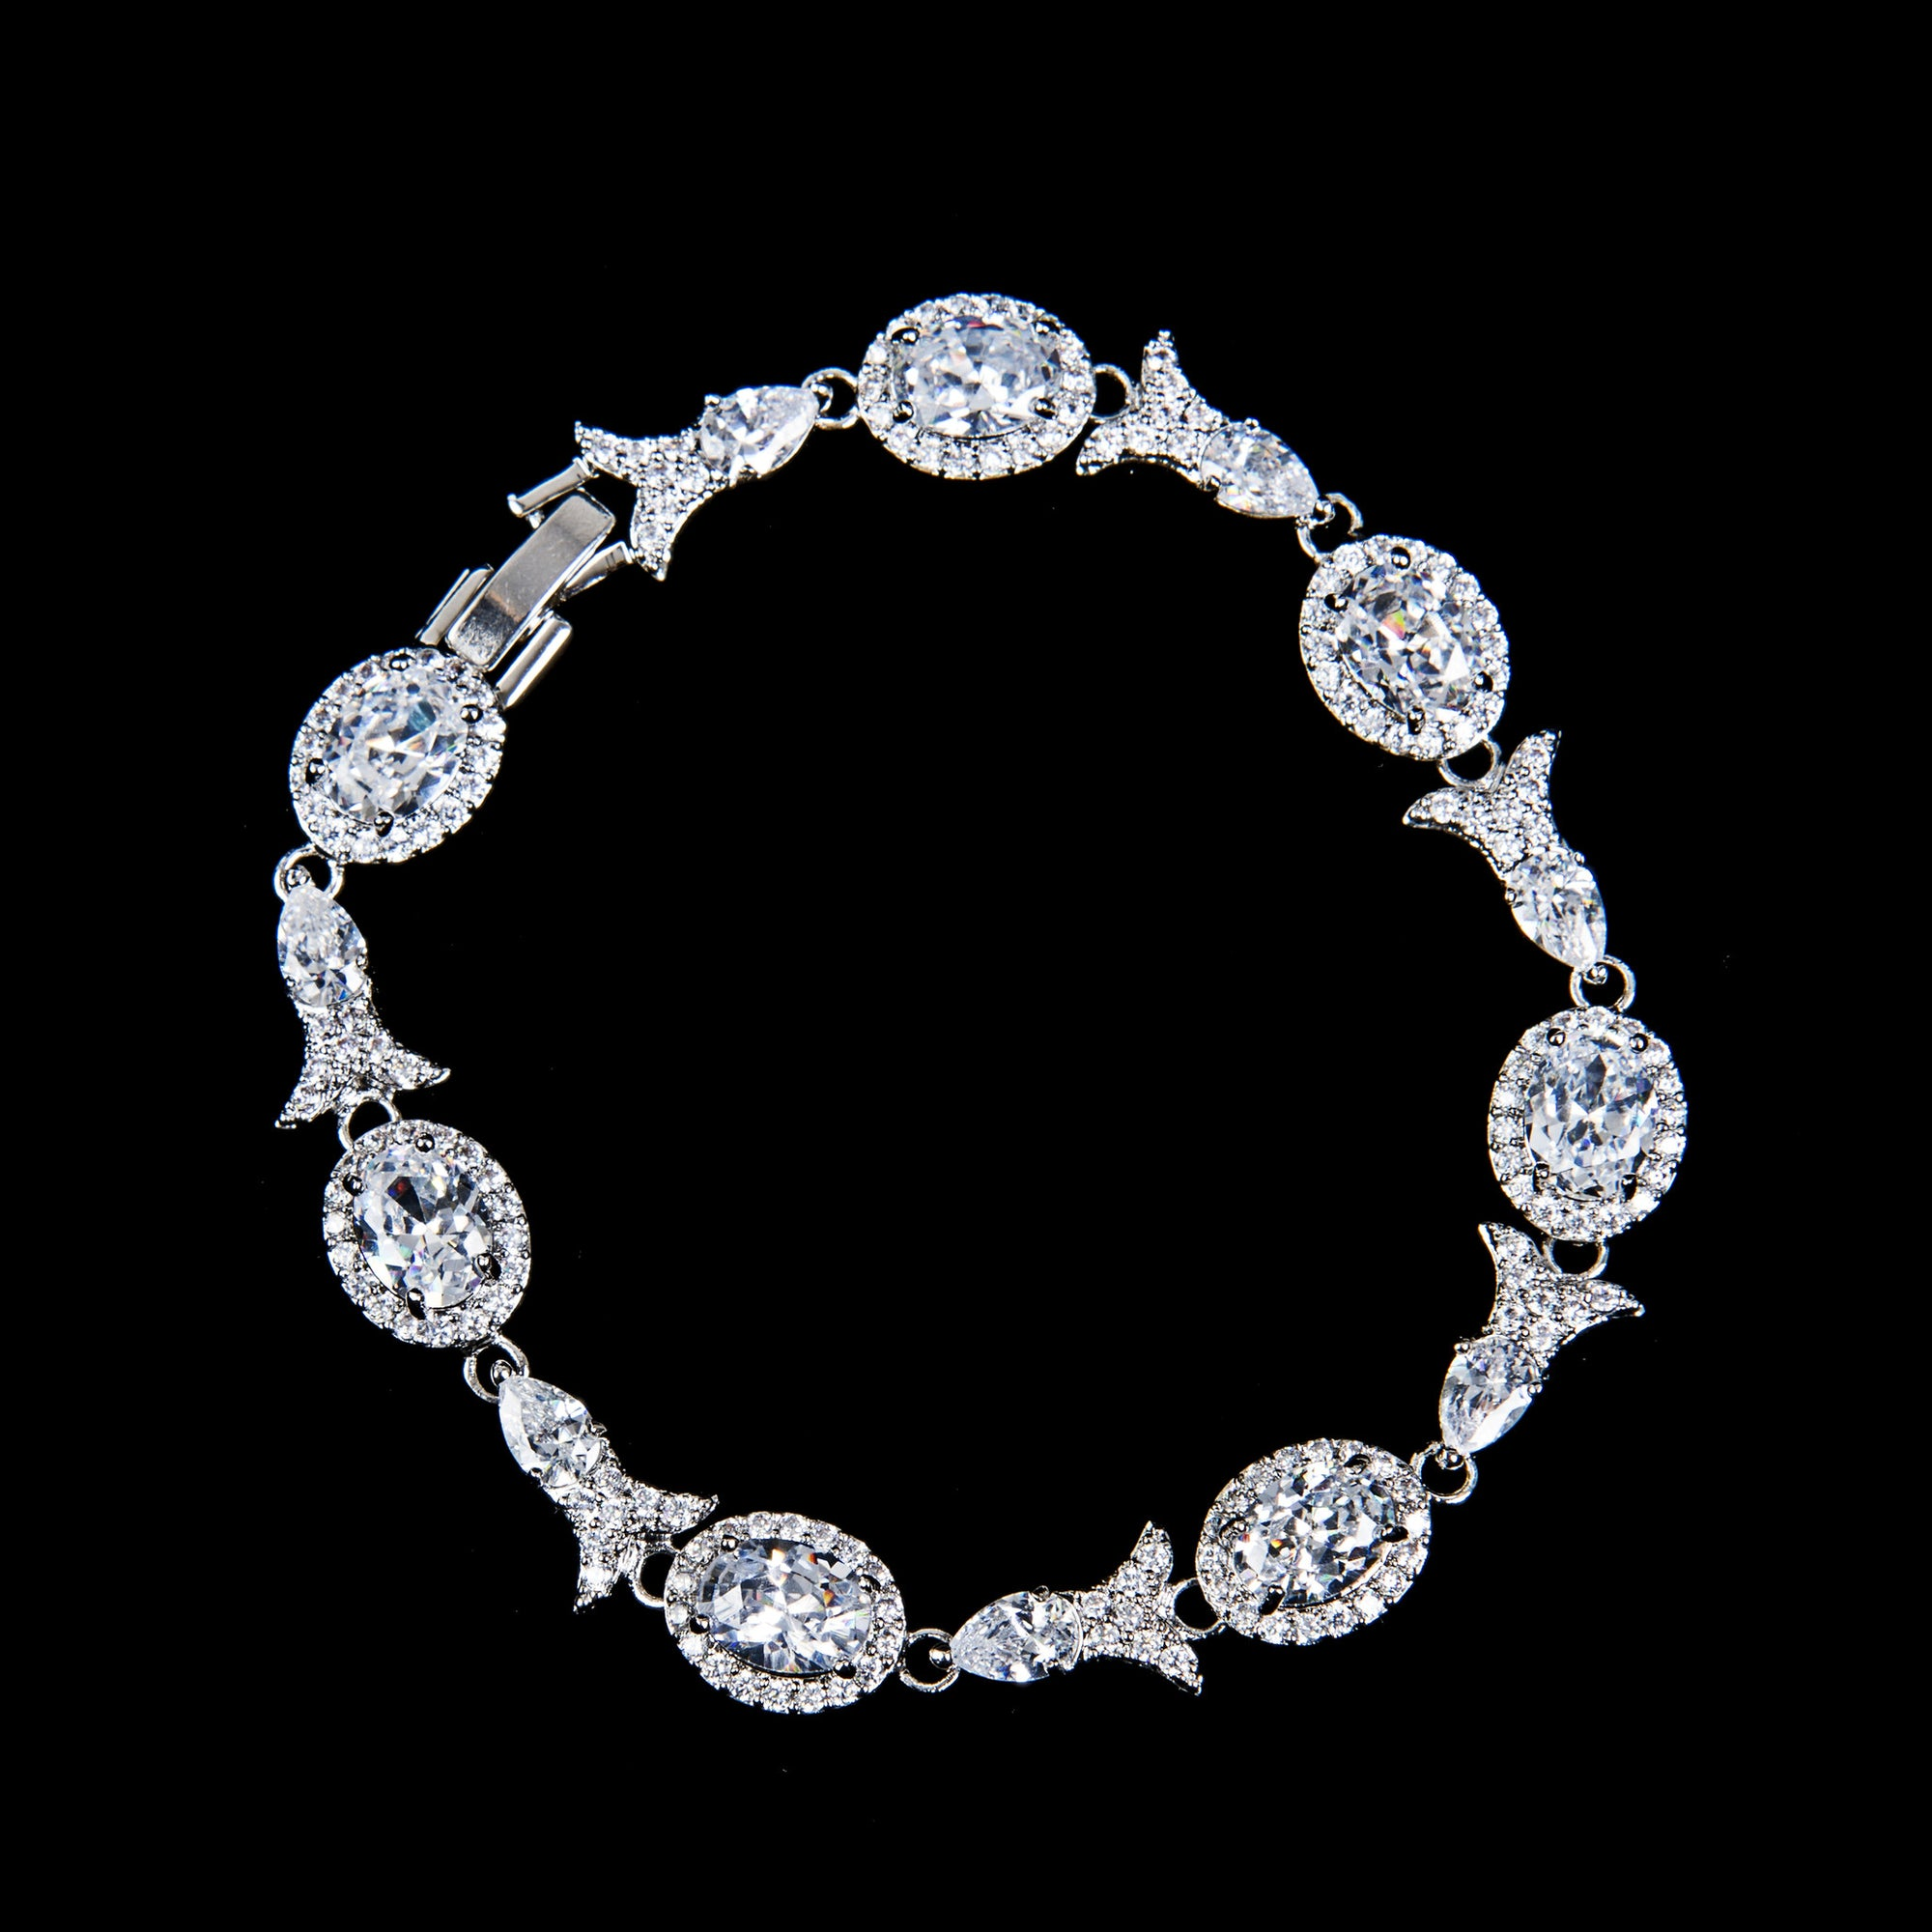 Alexandra Bridal Bracelet - Bracelet Wedding - Roman & French